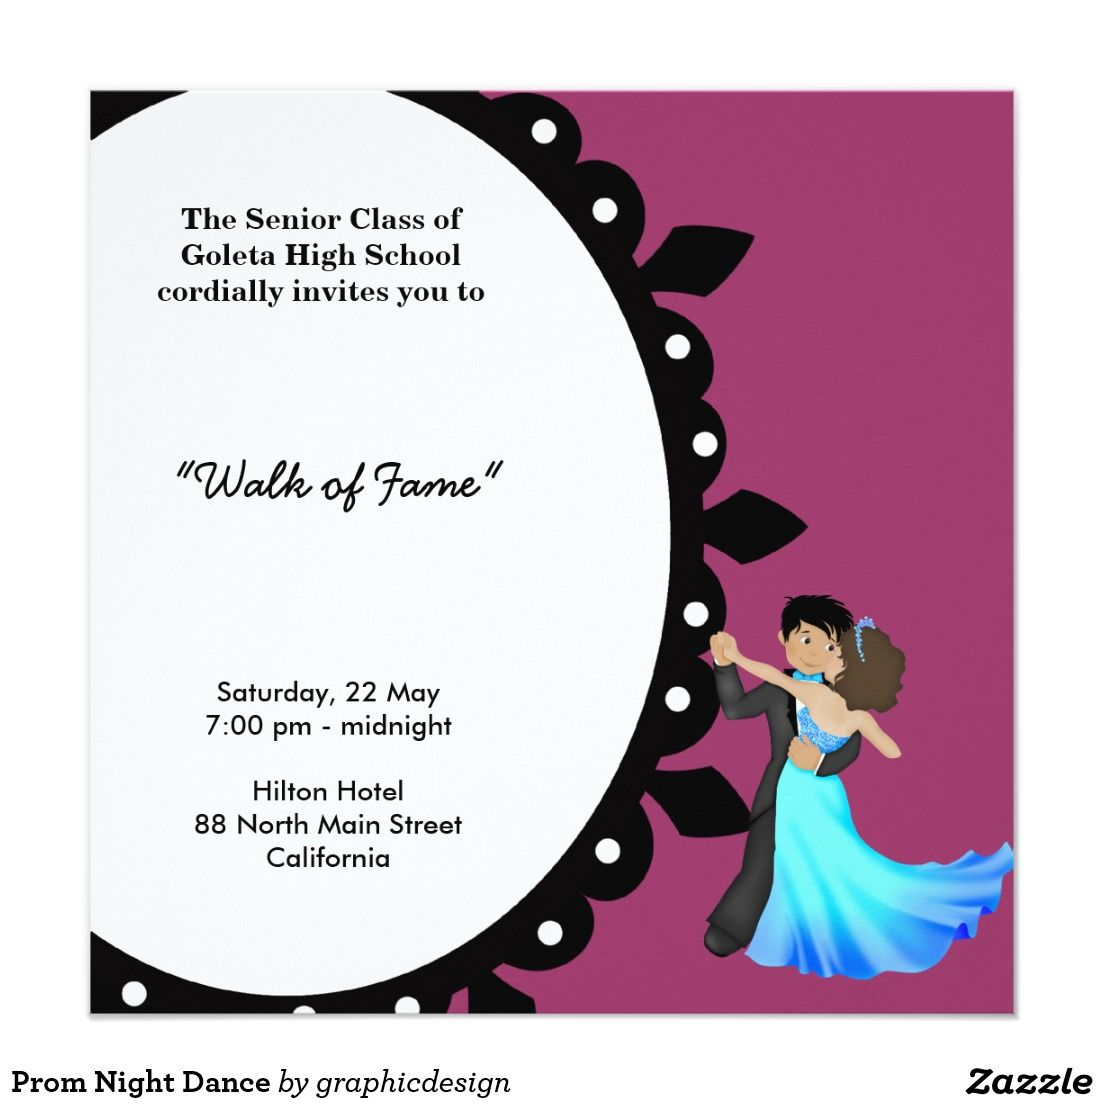 Prom night dance invitation pinterest prom night sold prom night dance invitation available in different products check more at zazzlecelebrationideas stopboris Image collections